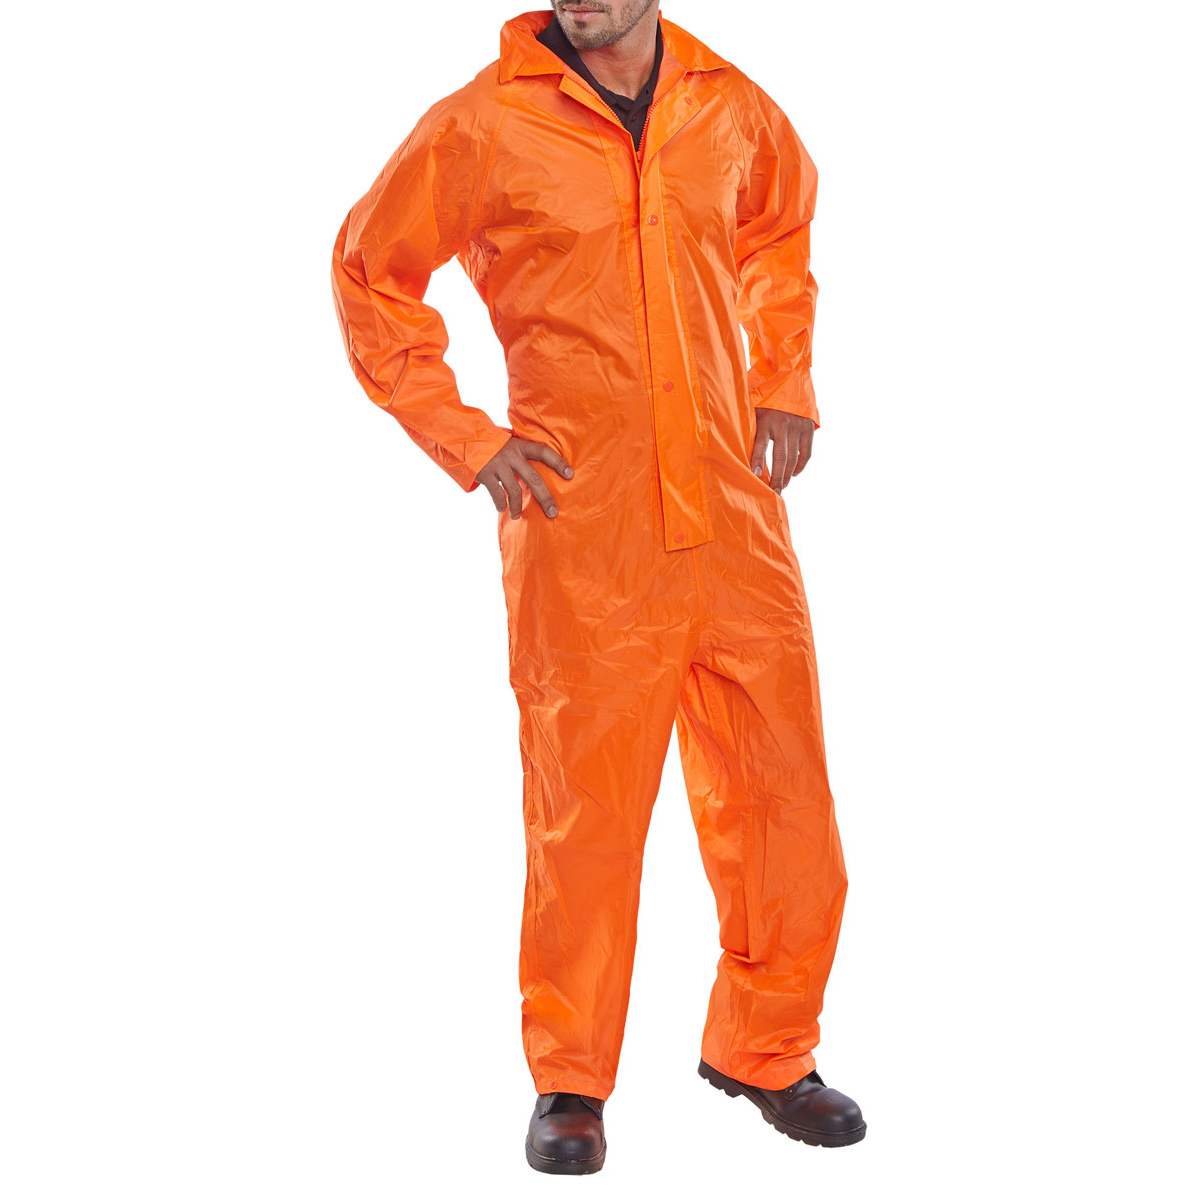 B-Dri Weatherproof Coveralls Nylon 2XL Orange Ref NBDCORXXL *Up to 3 Day Leadtime*